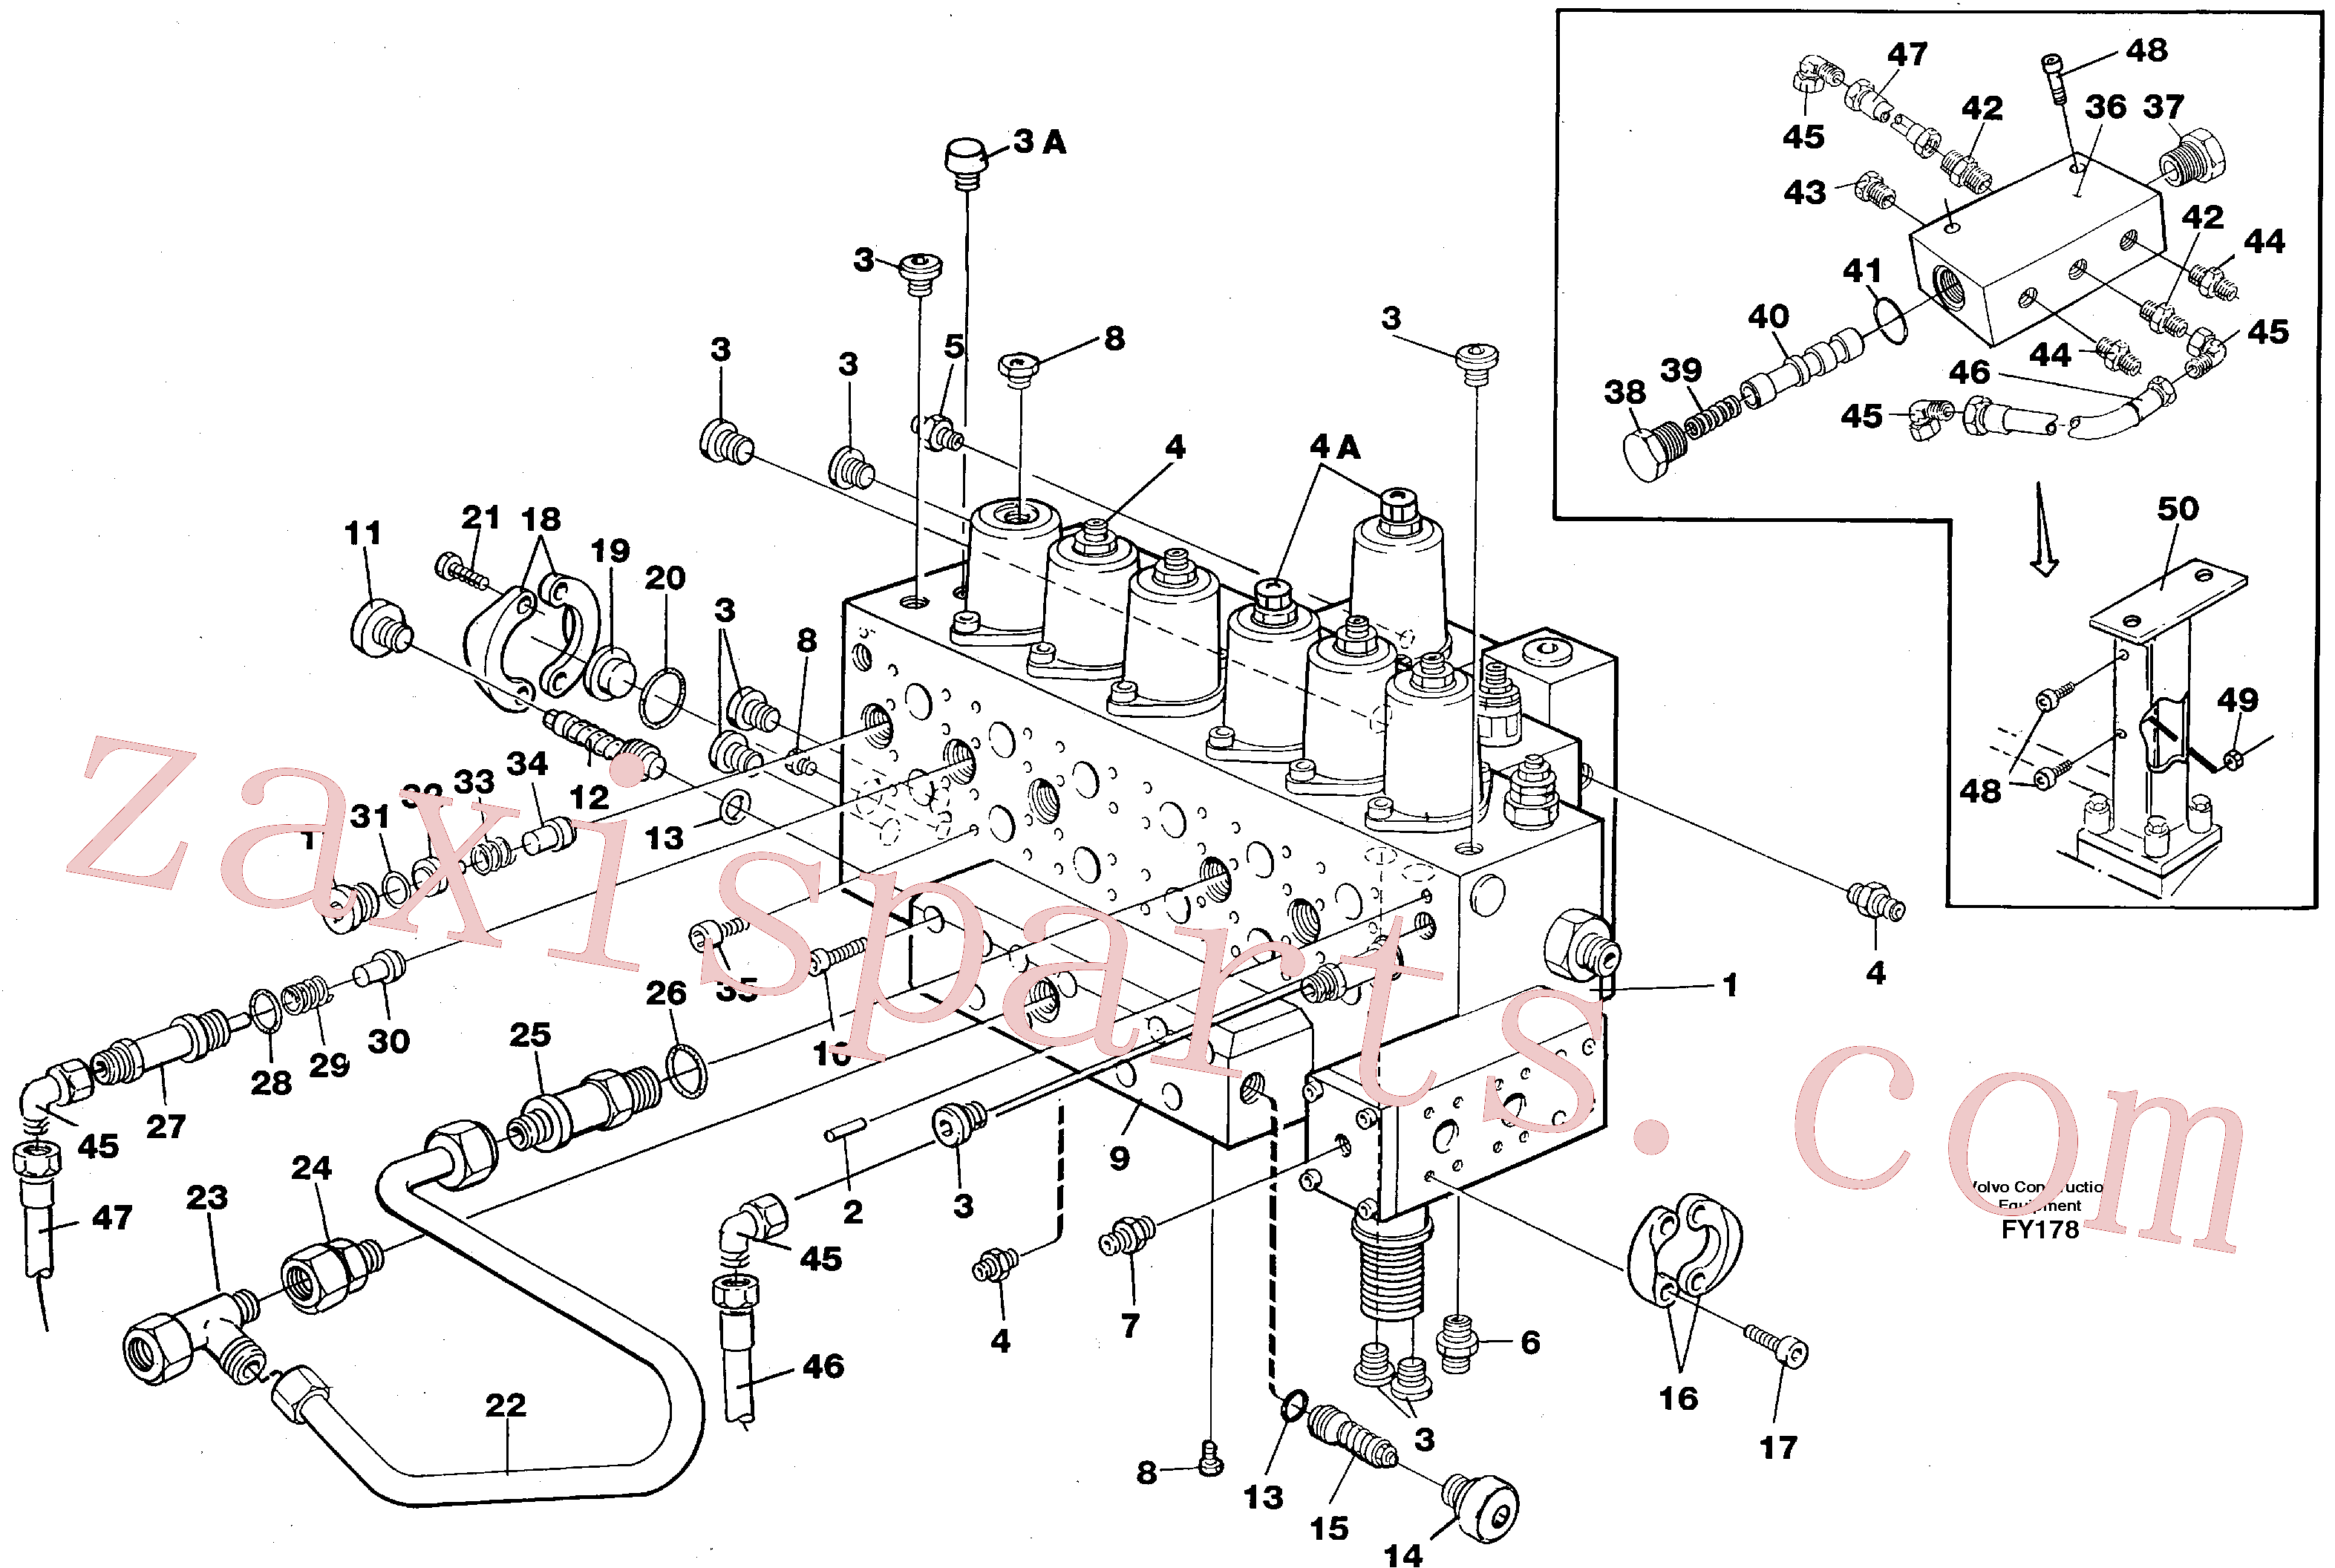 VOE14213678 for Volvo Main valve assembly, tubes connections, assembly bloc(FY178 assembly)